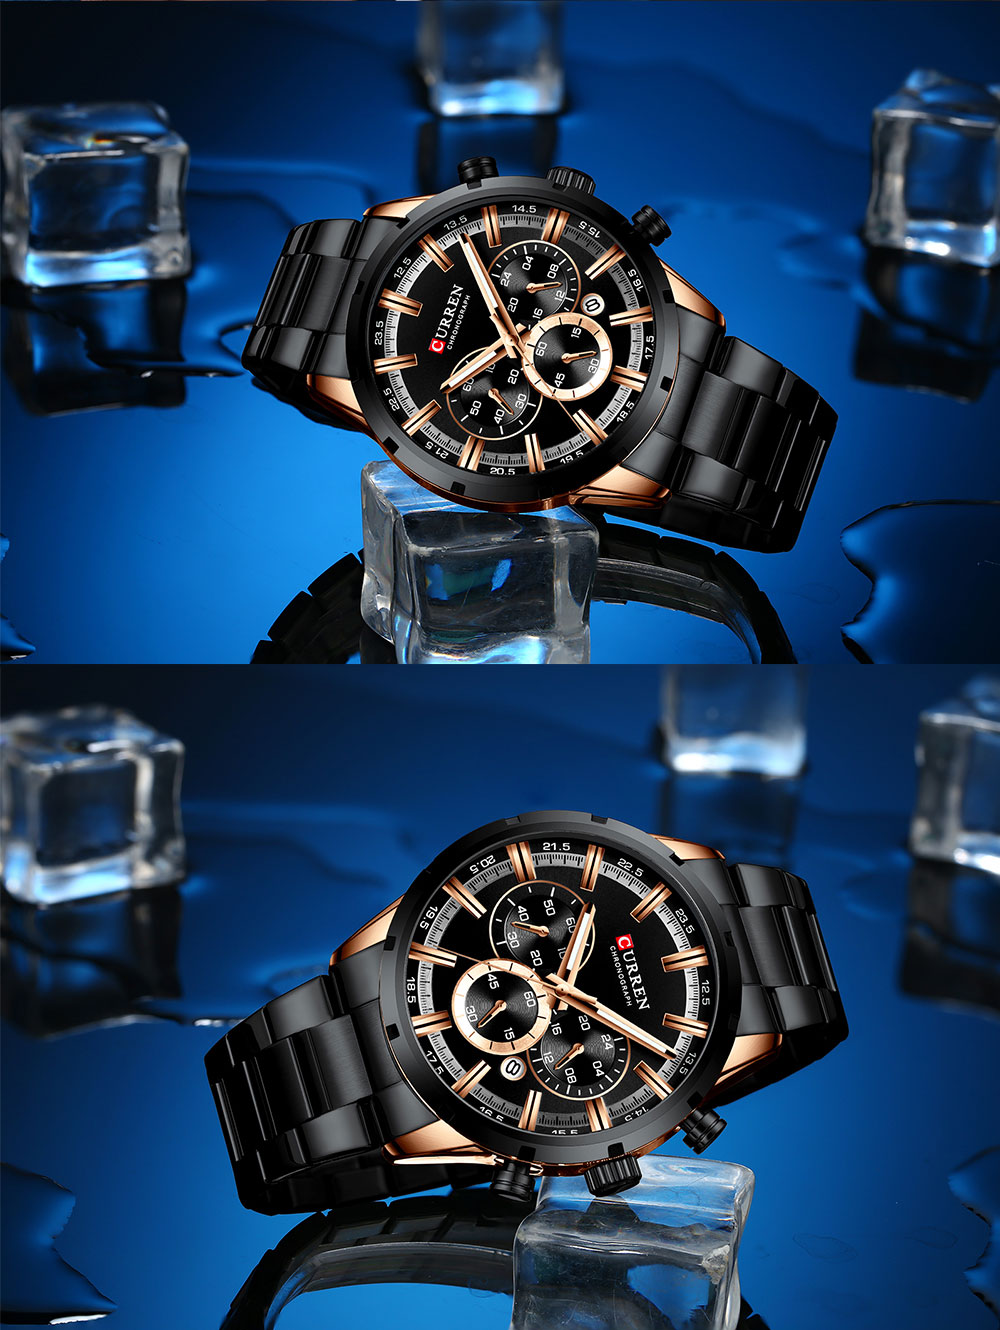 H5d3644abd9f94a74b8a97d827f15cb9bI CURREN New Fashion Mens Watches Quartz Chronograph